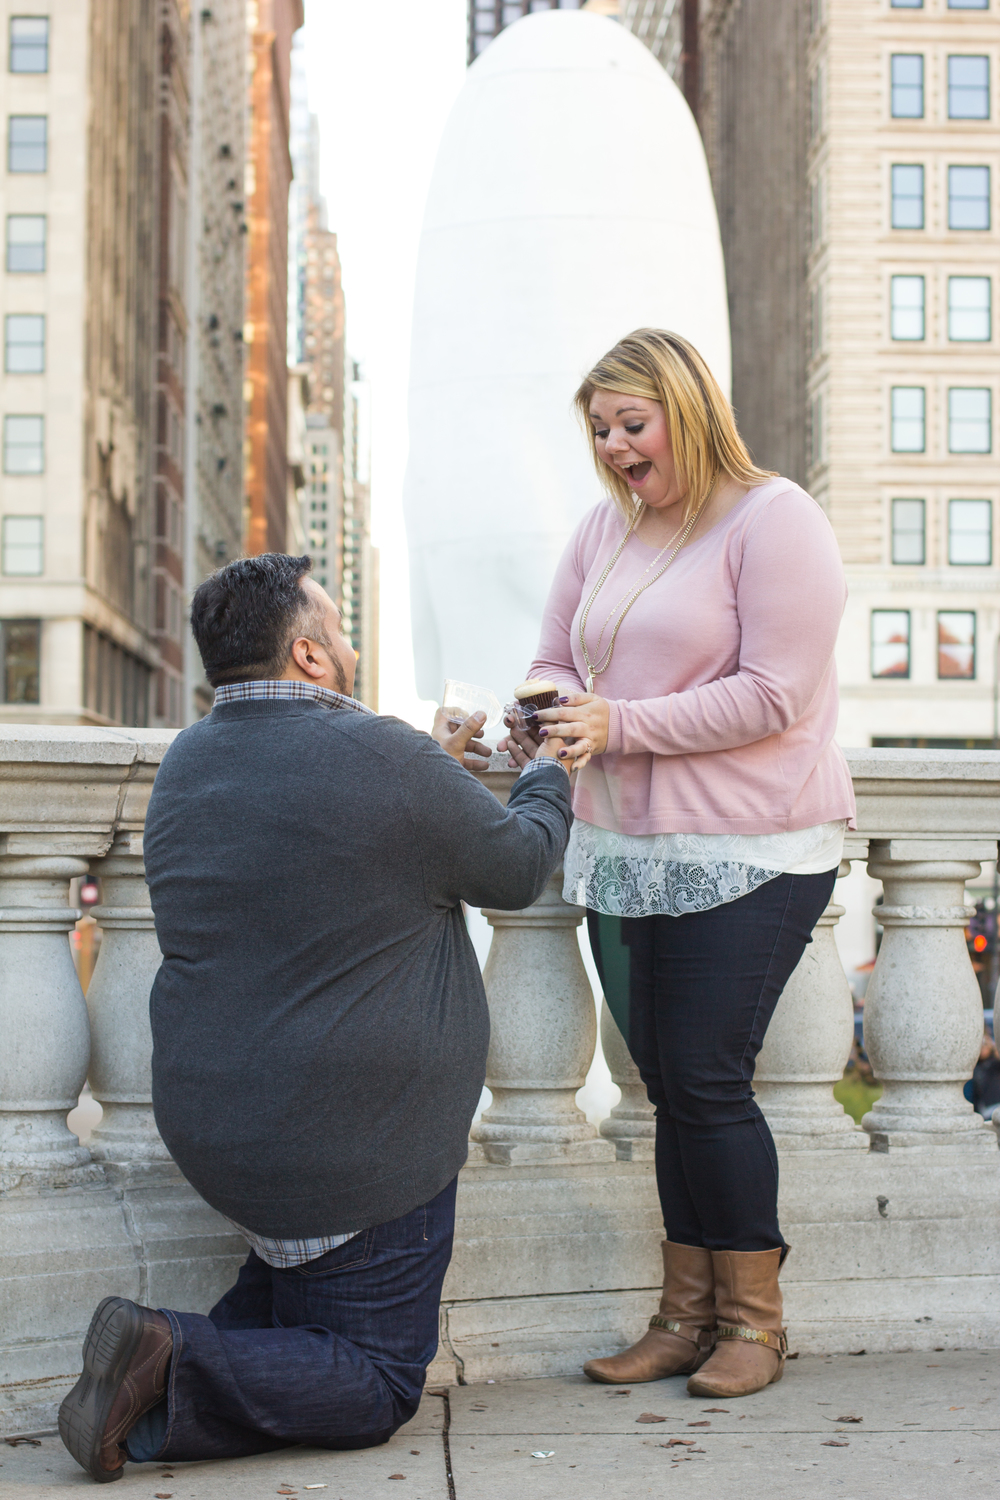 Nickie & Hector_Chicago Engagement_Oct 2015 (40 of 44).jpg